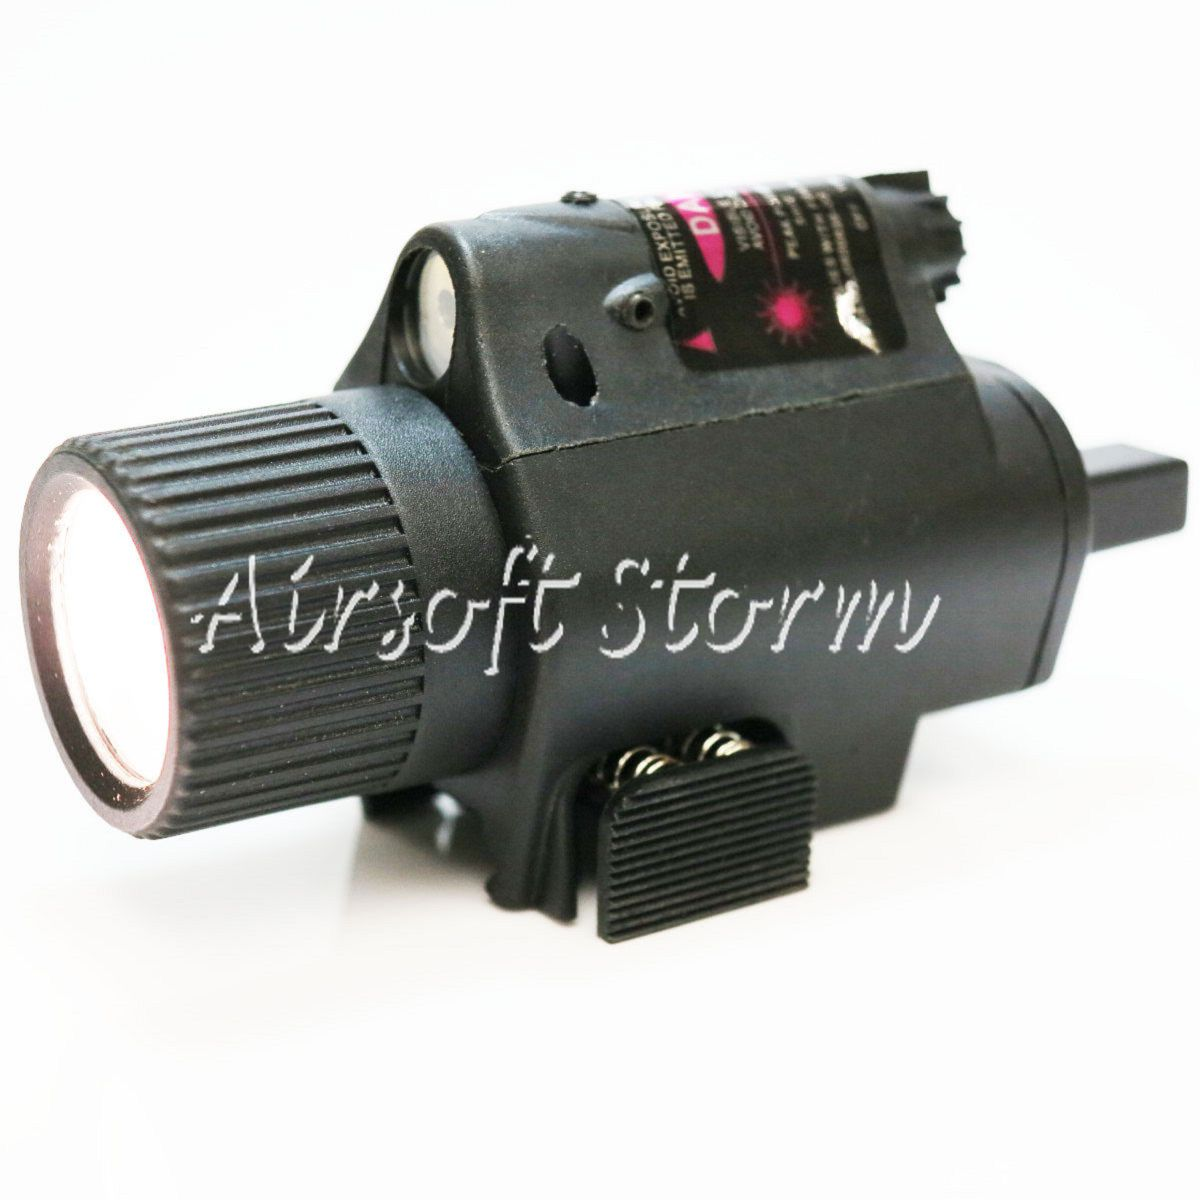 AEG Shooting Gear 2in1 65Lm Xenon Tactical Flashlight & Red Laser